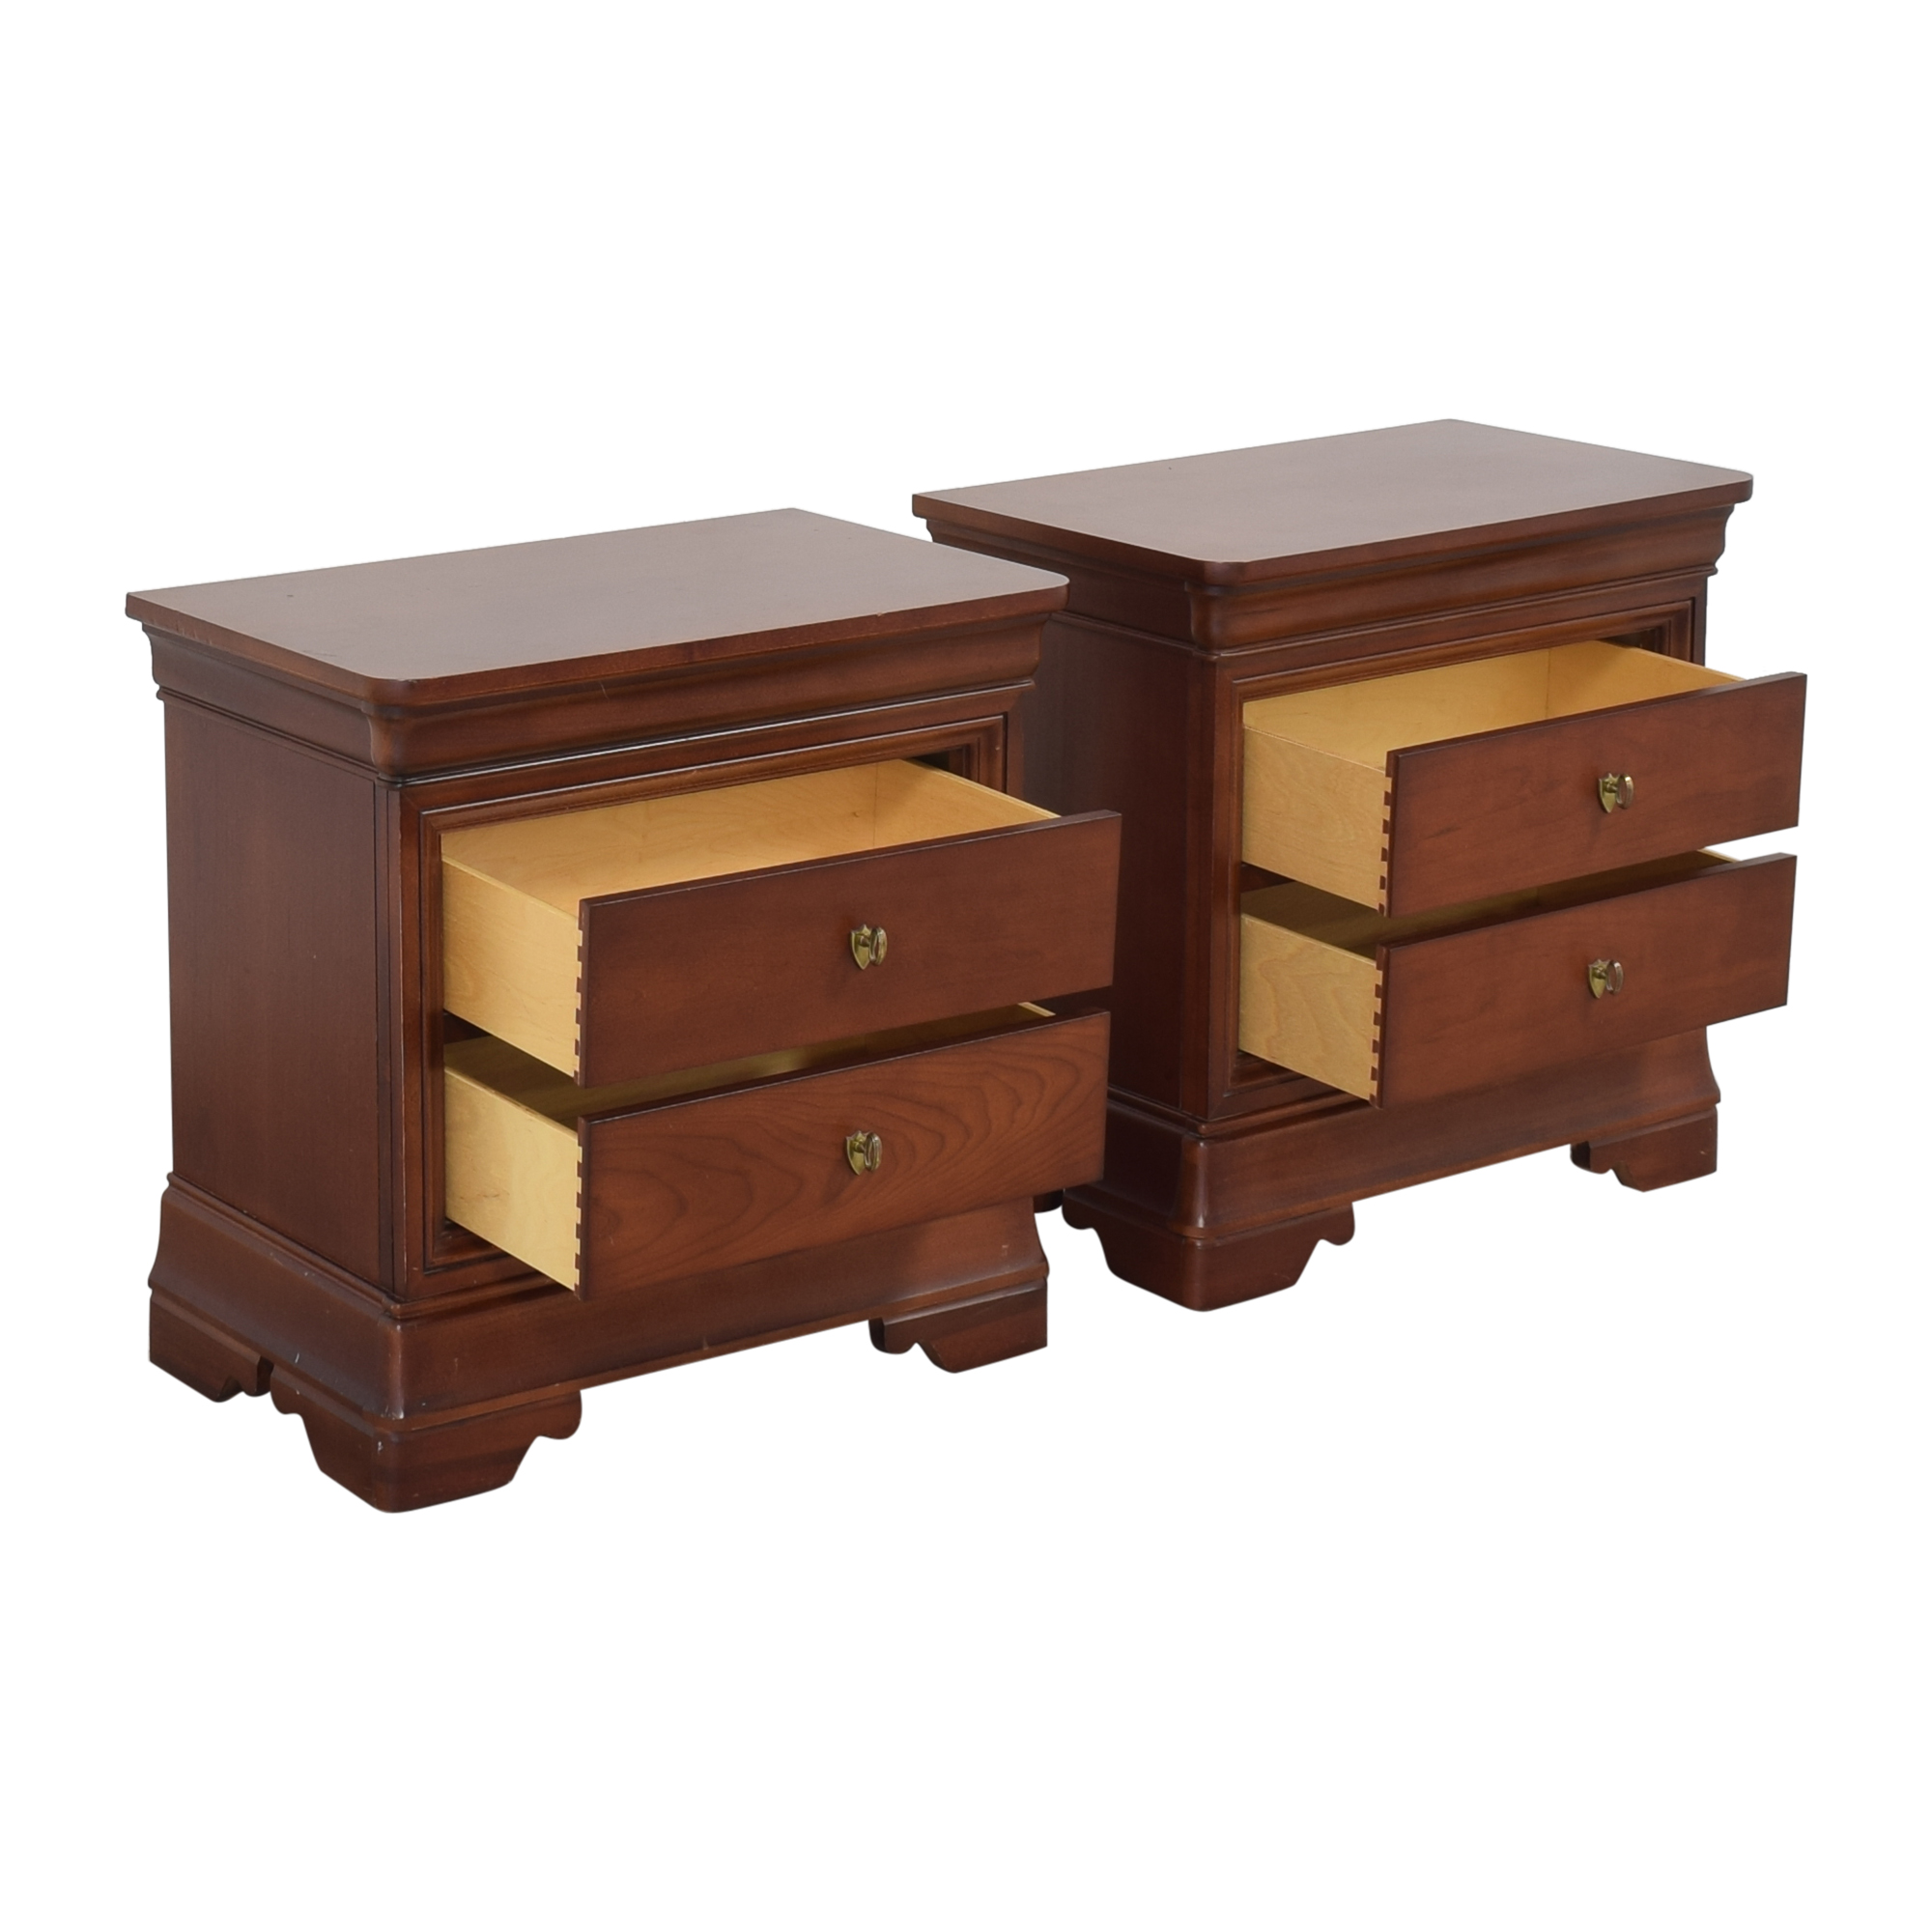 Thomasville Impressions Two Drawer Nightstands / End Tables